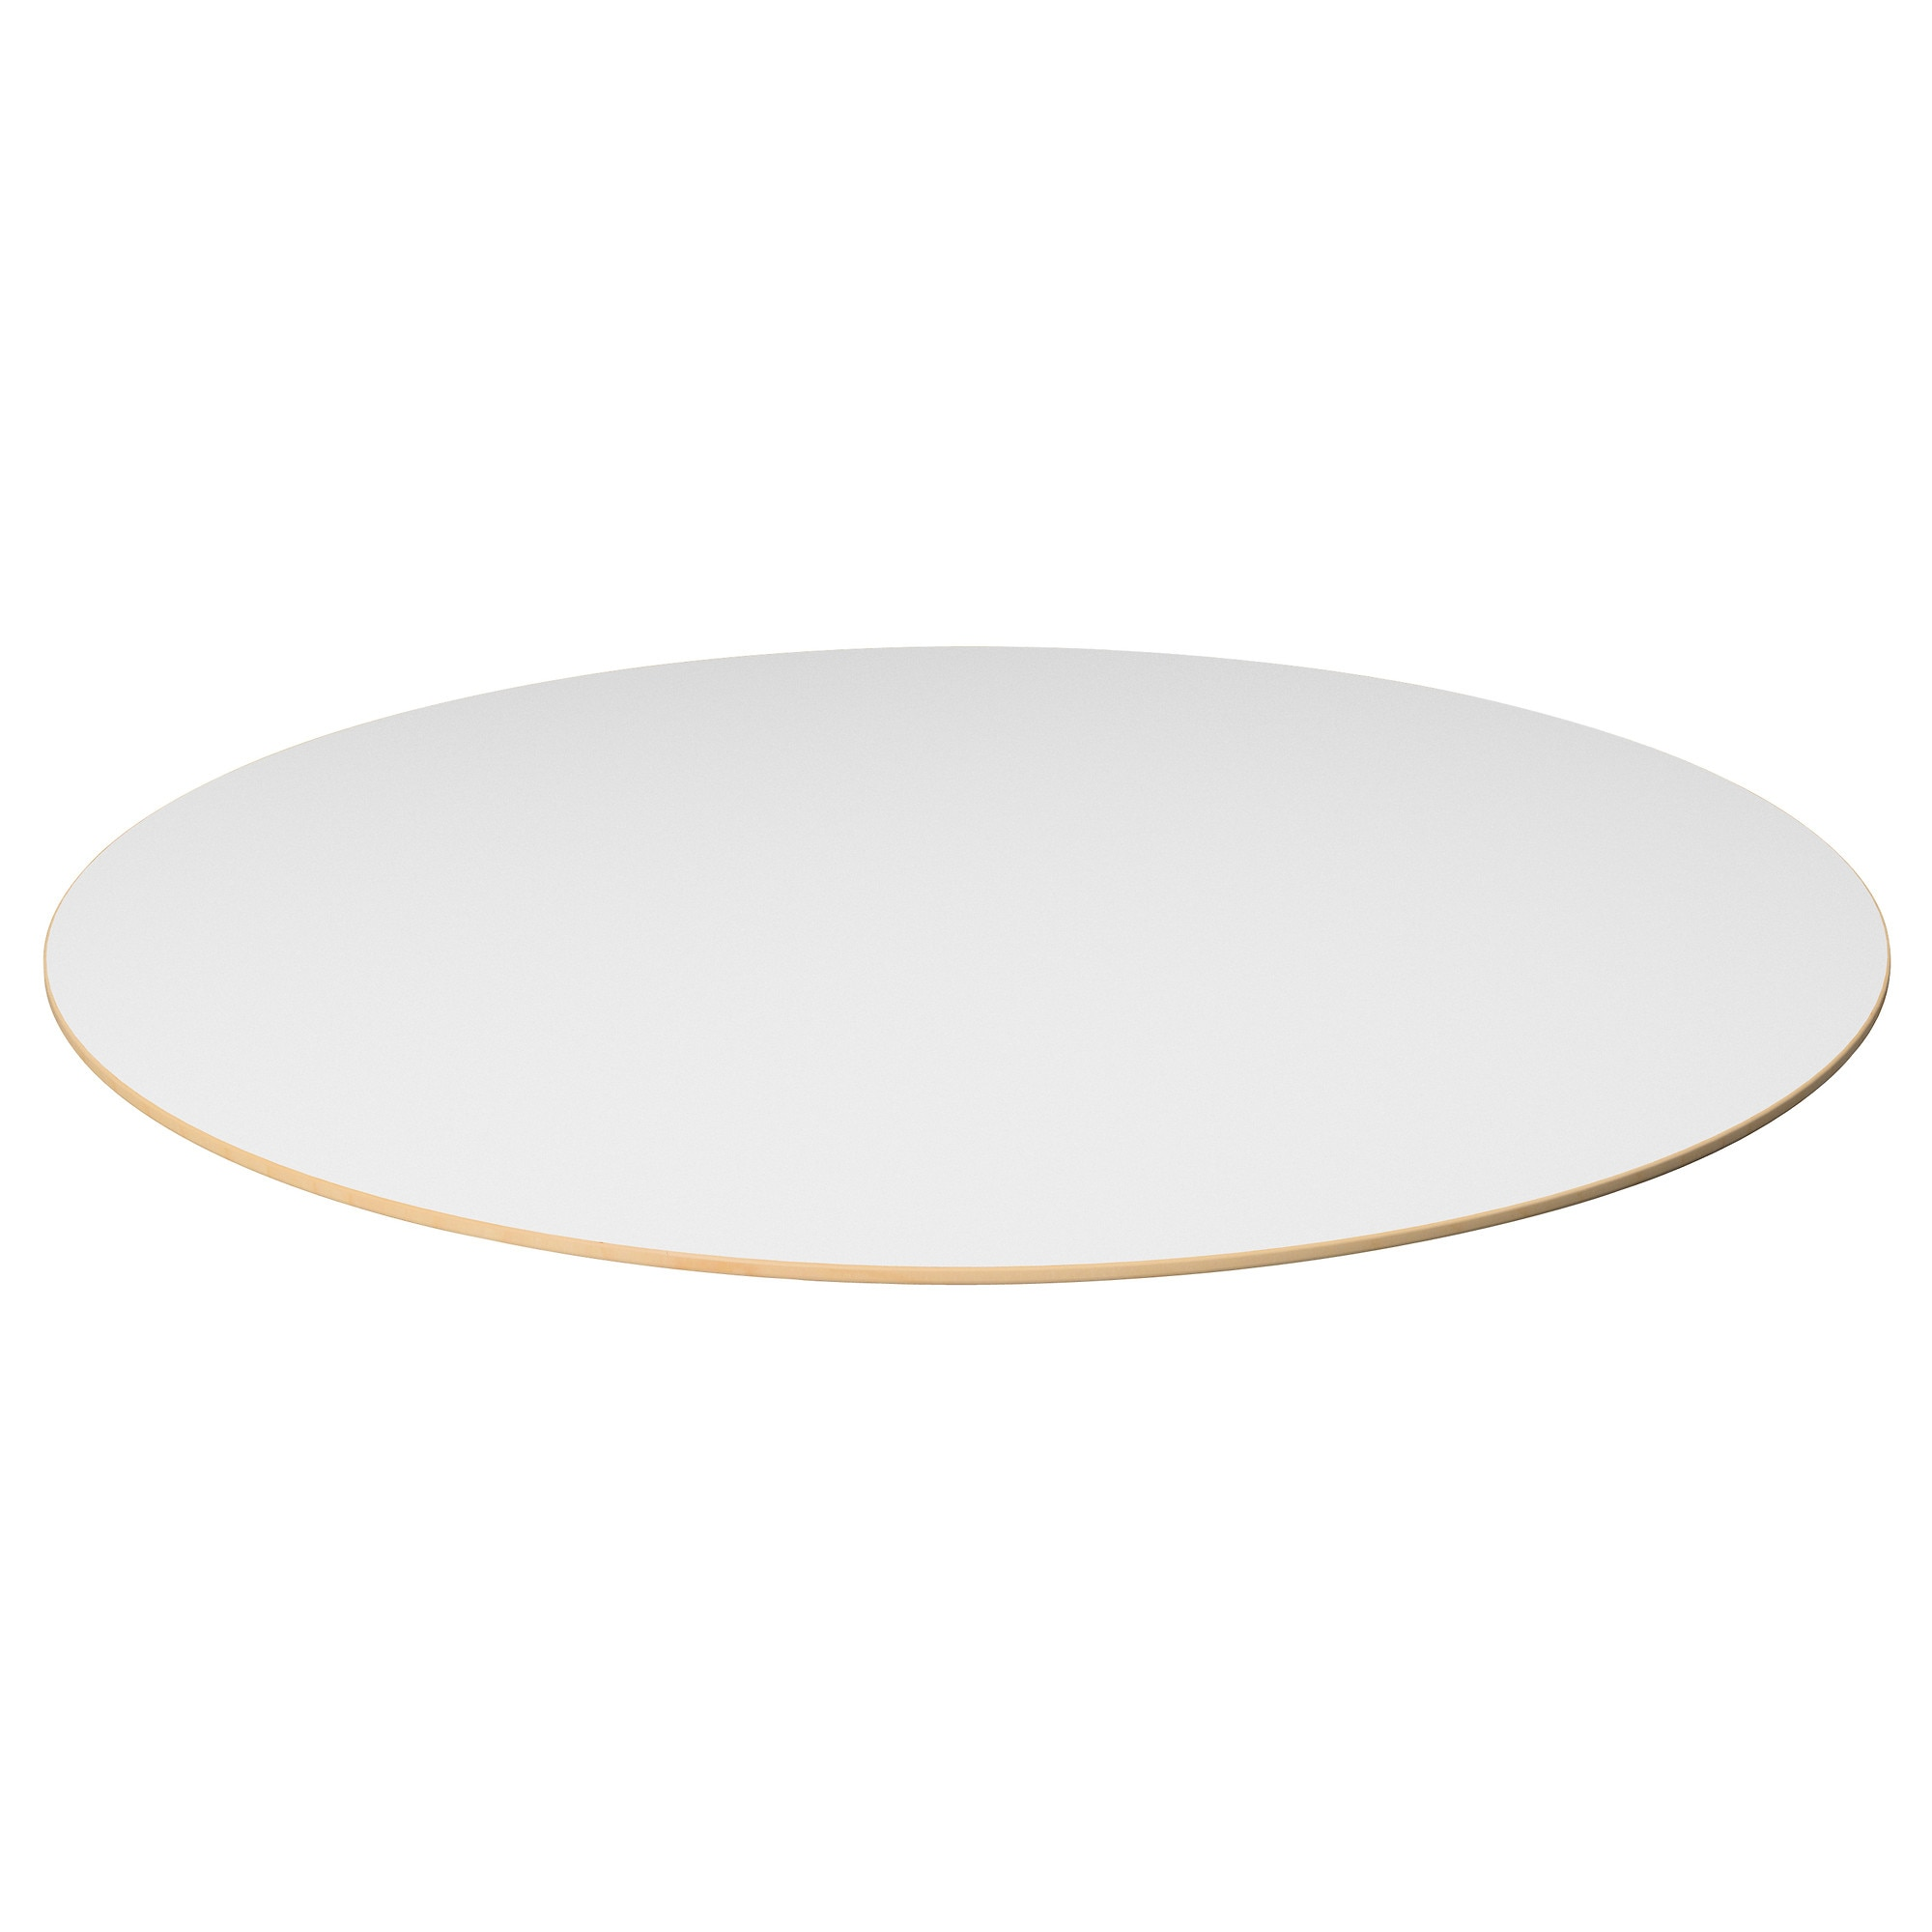 Table ronde plateau verre ikea for Plateau en verre ikea